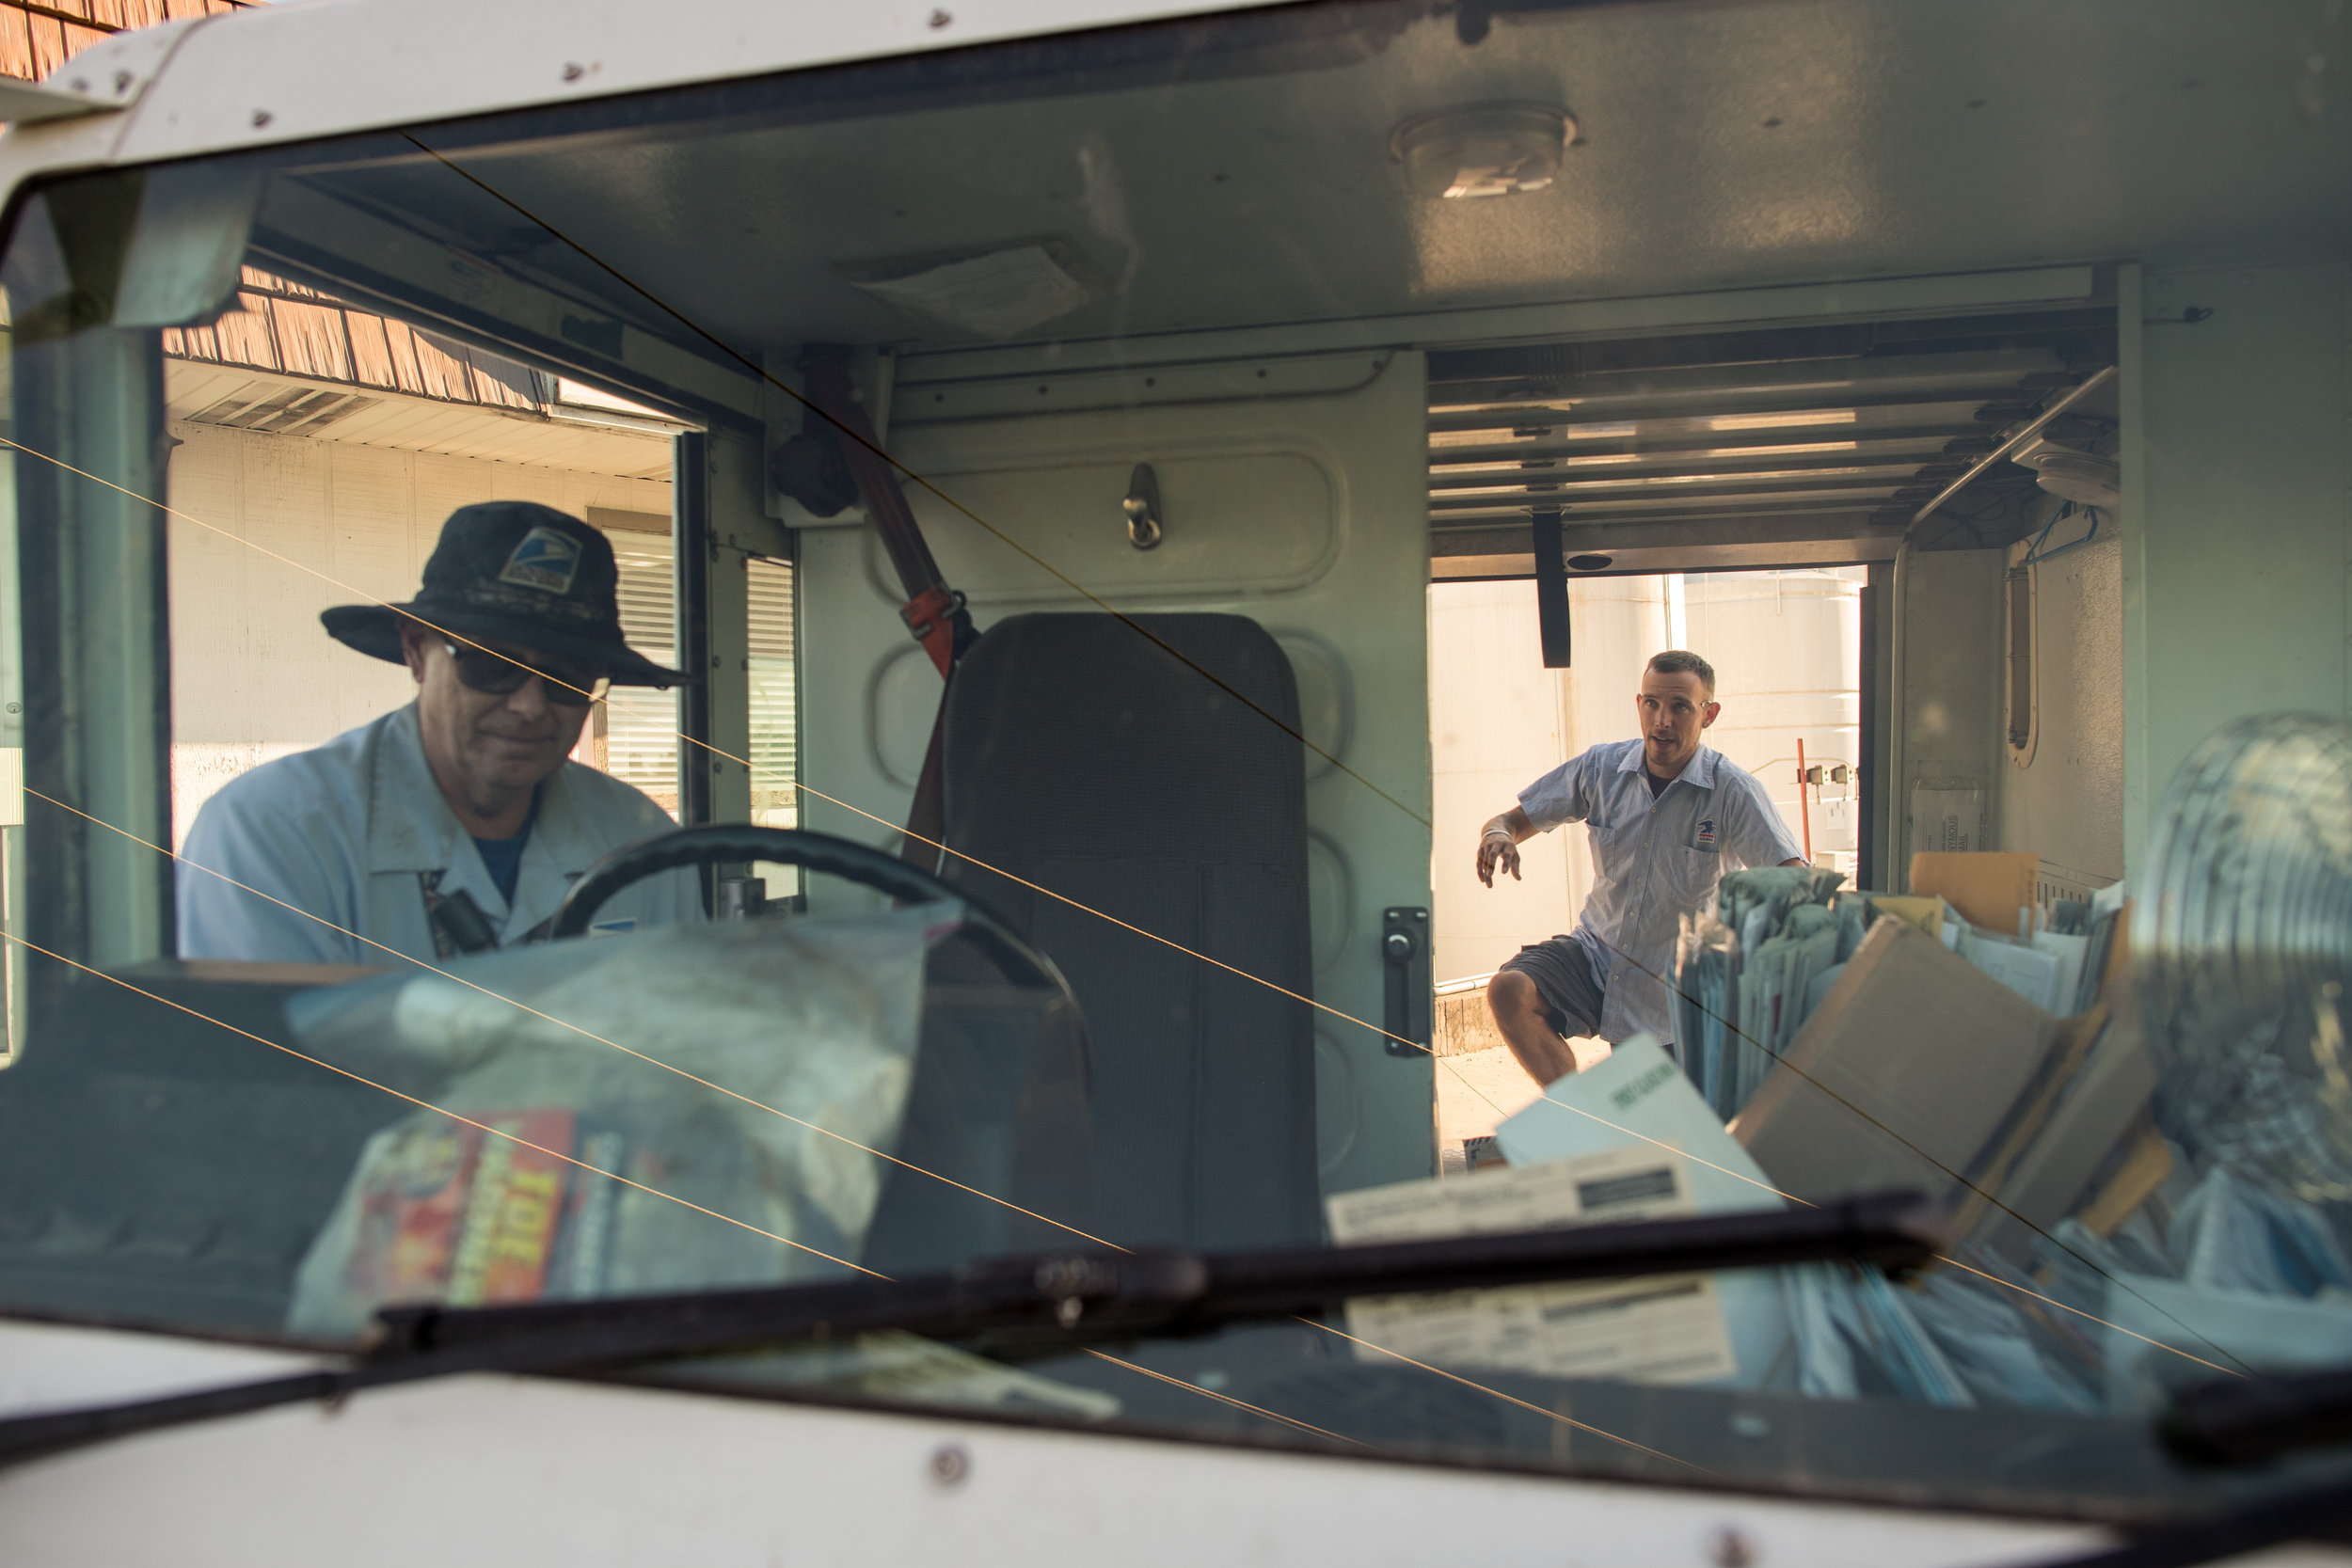 Lee Krueger, steps into the back of the mail truck. Lee joined Greg to learn the route.